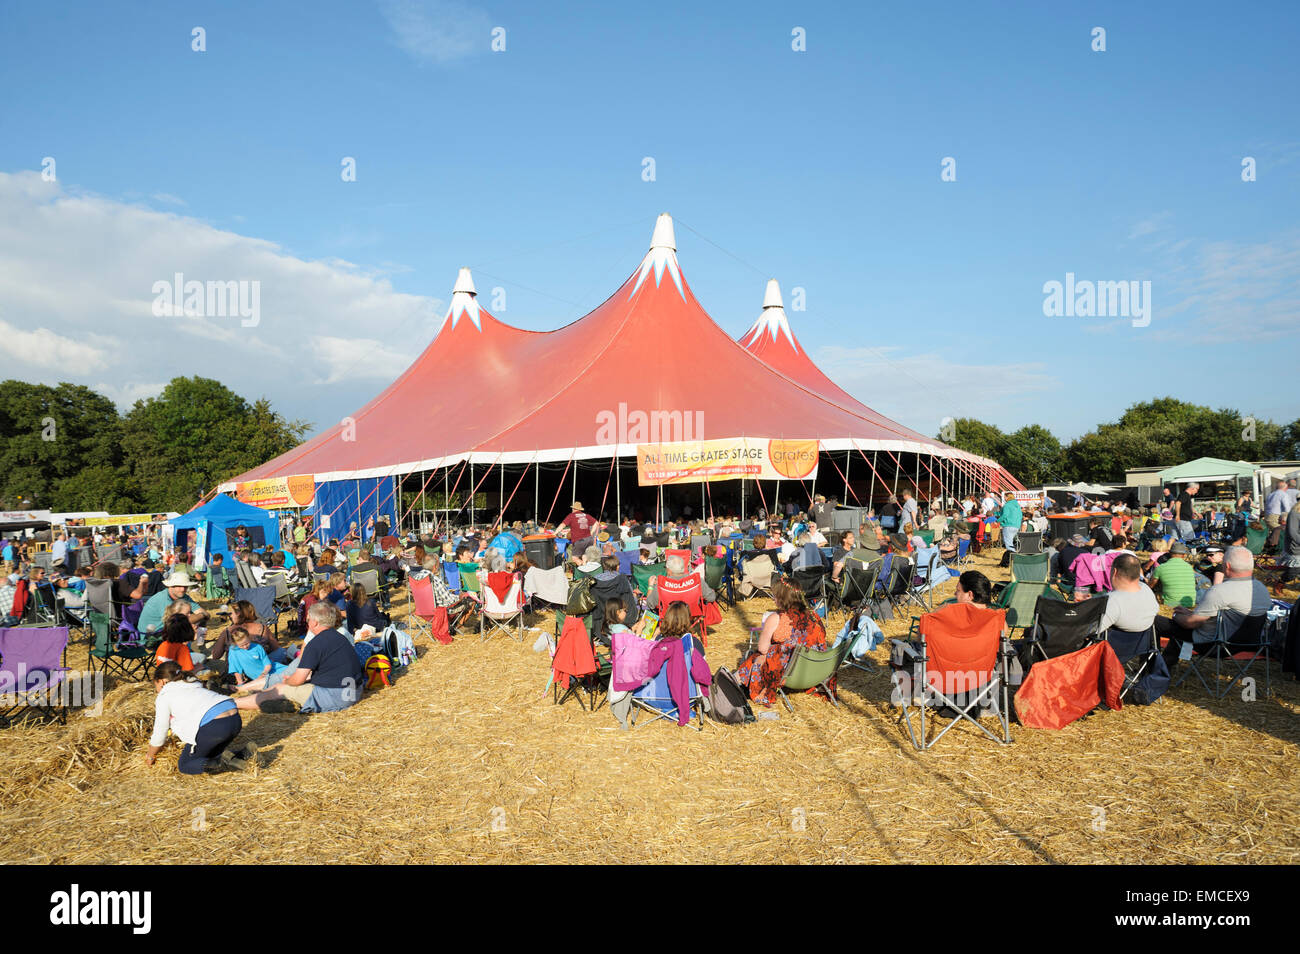 People sitting enjoying the evening sun in front of the main stage at the Wickham Music Festival, Hampshire, England - Stock Image